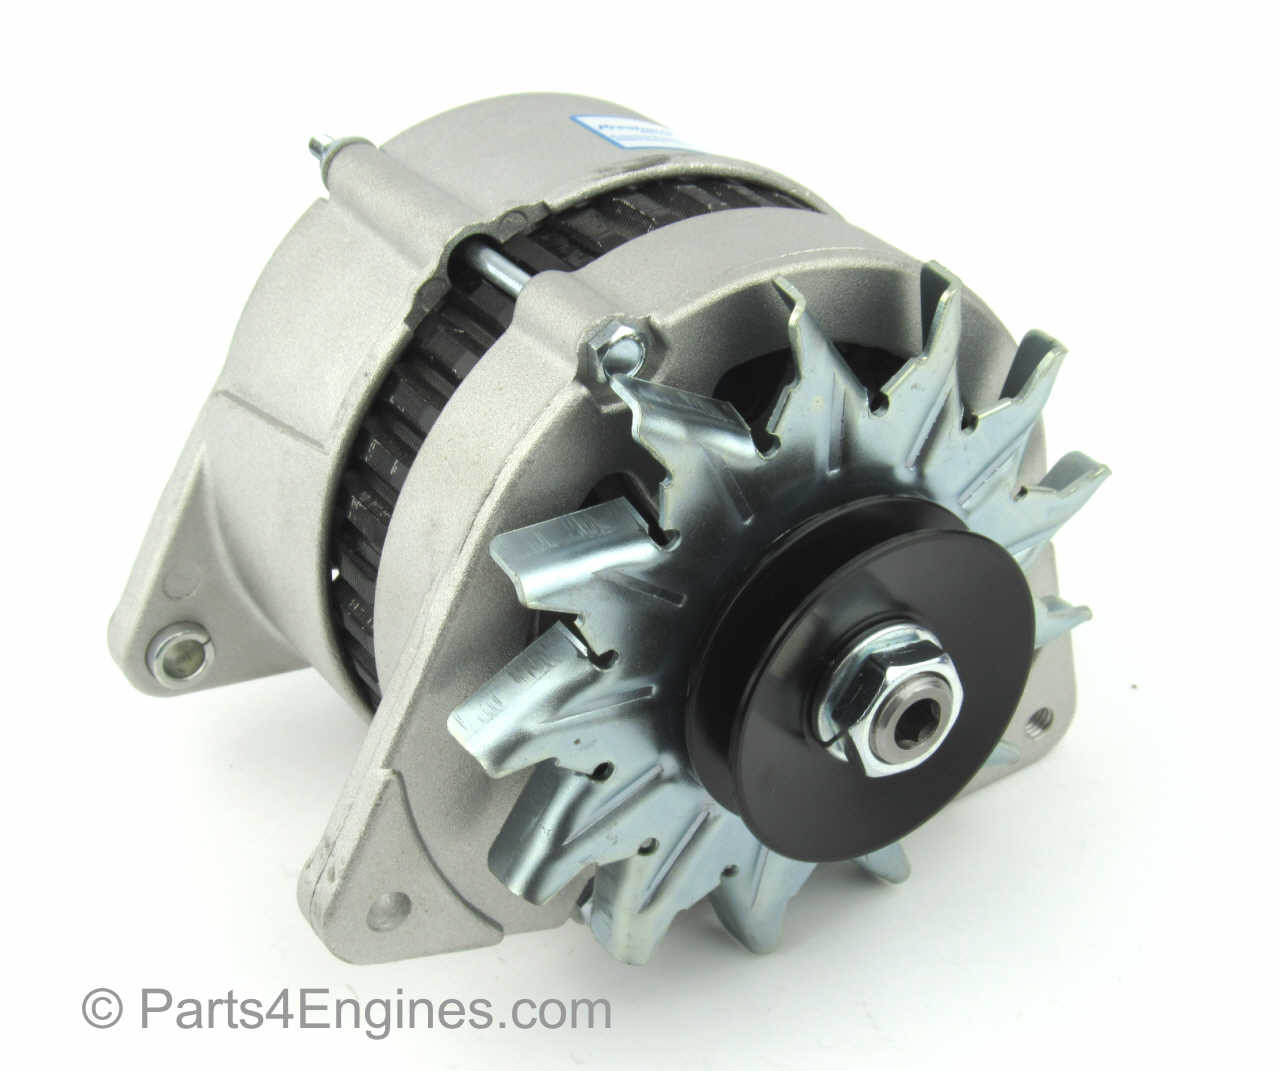 left perkins 4 107 alternator 12v 70 amp from parts4engines com [ 1280 x 1071 Pixel ]